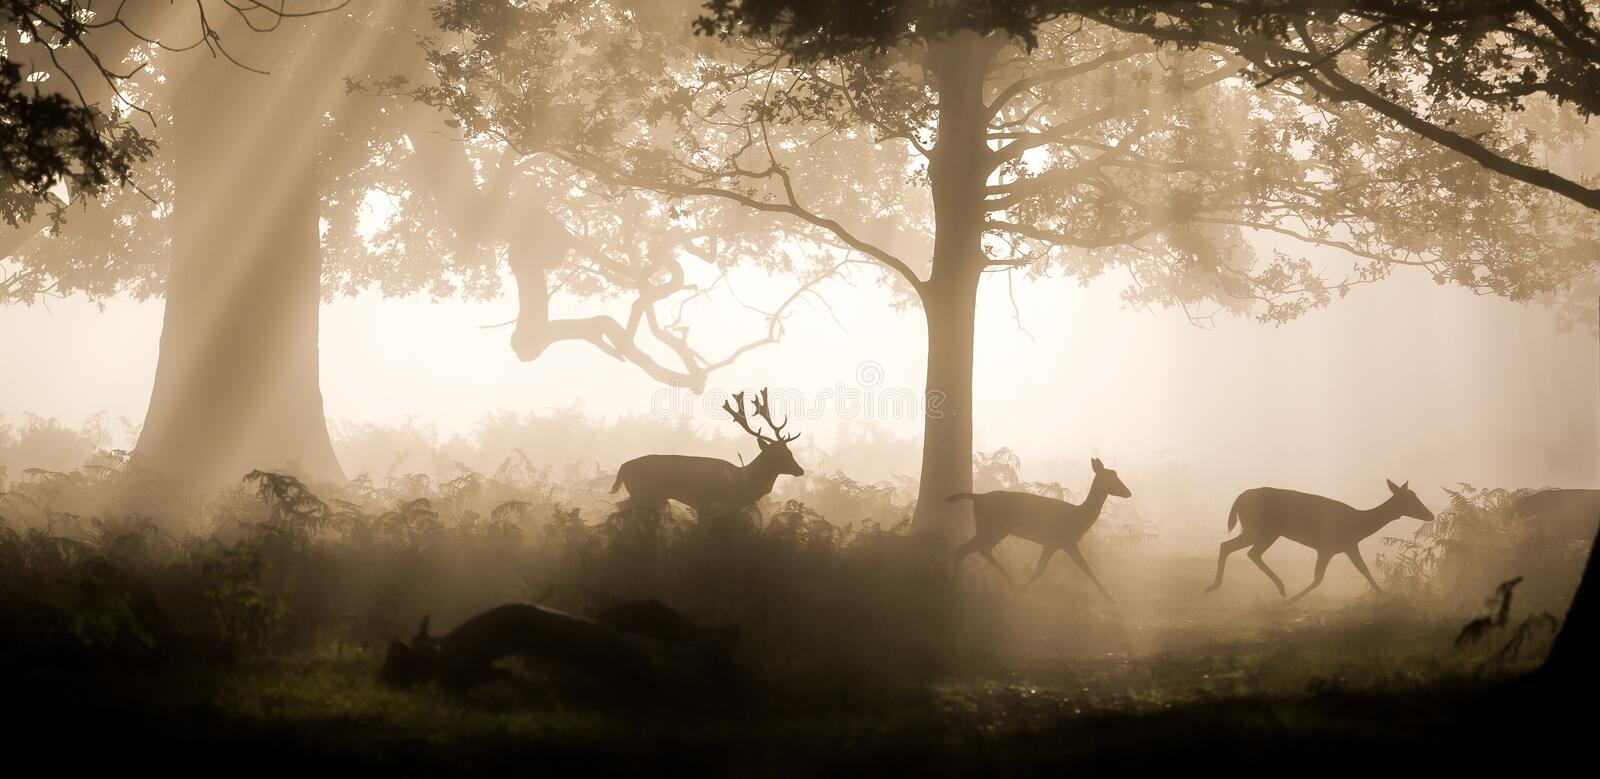 Deer raiding. Three wild deer walking through an early morning mist. Tranquil and idyllic countryside scene. Early morning mist stock images